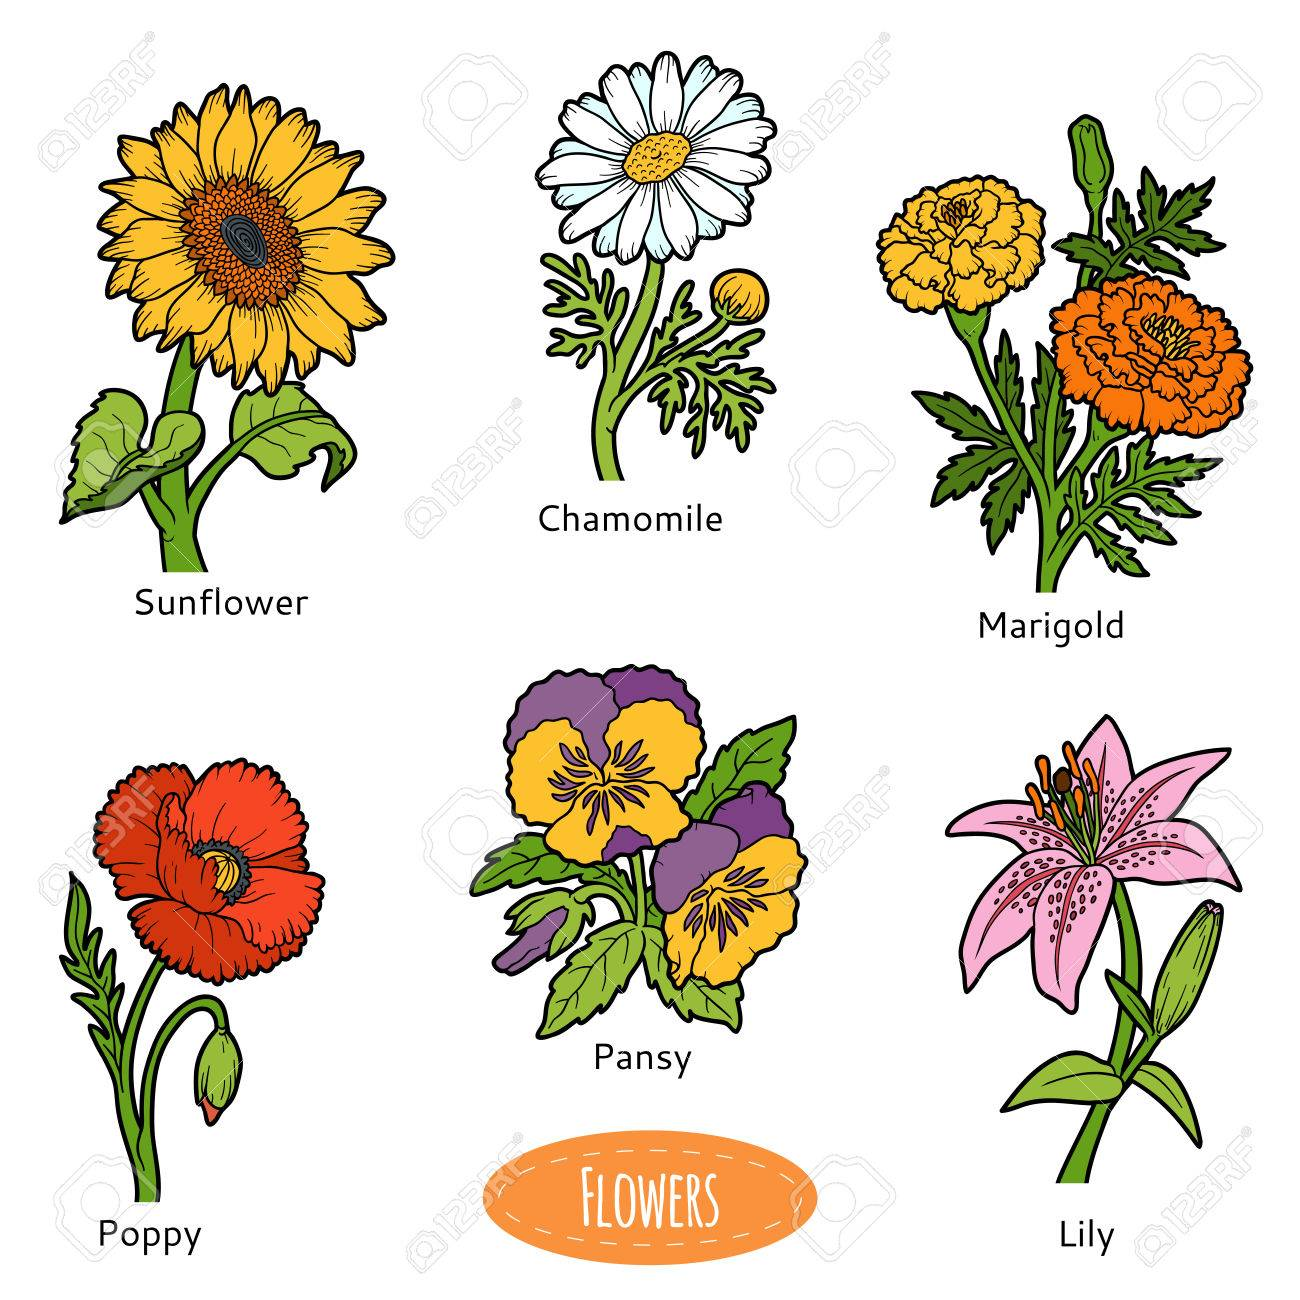 Vector set of flowers color nature collection royalty free cliparts vector set of flowers color nature collection stock vector 67149824 voltagebd Image collections